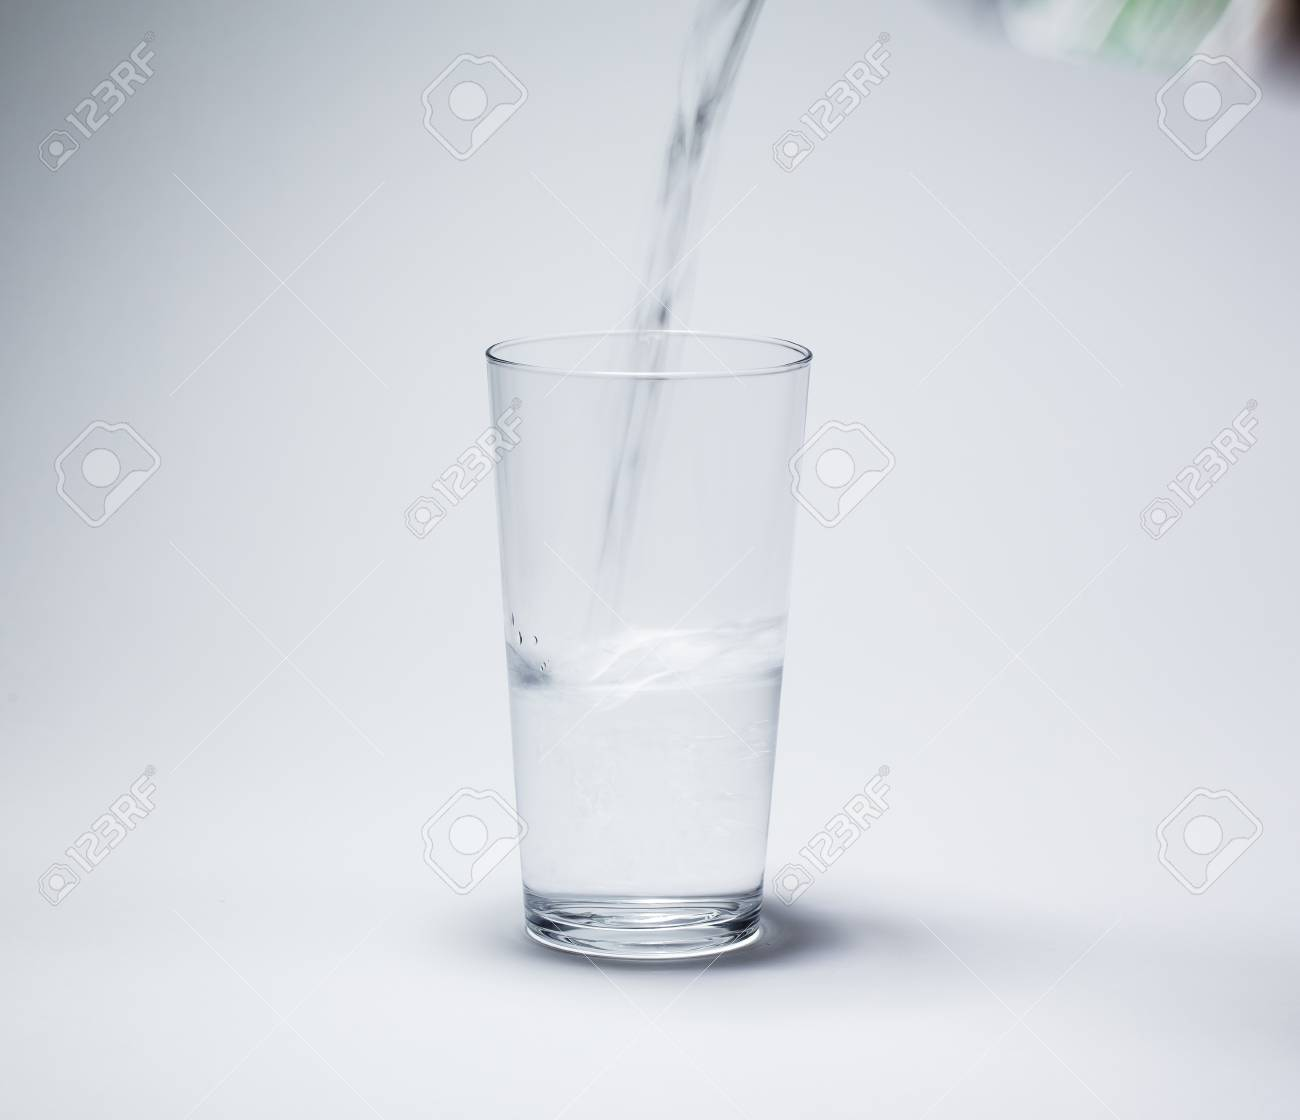 52e6663d3bb glass water drinking isolated on white background Stock Photo - 42563995